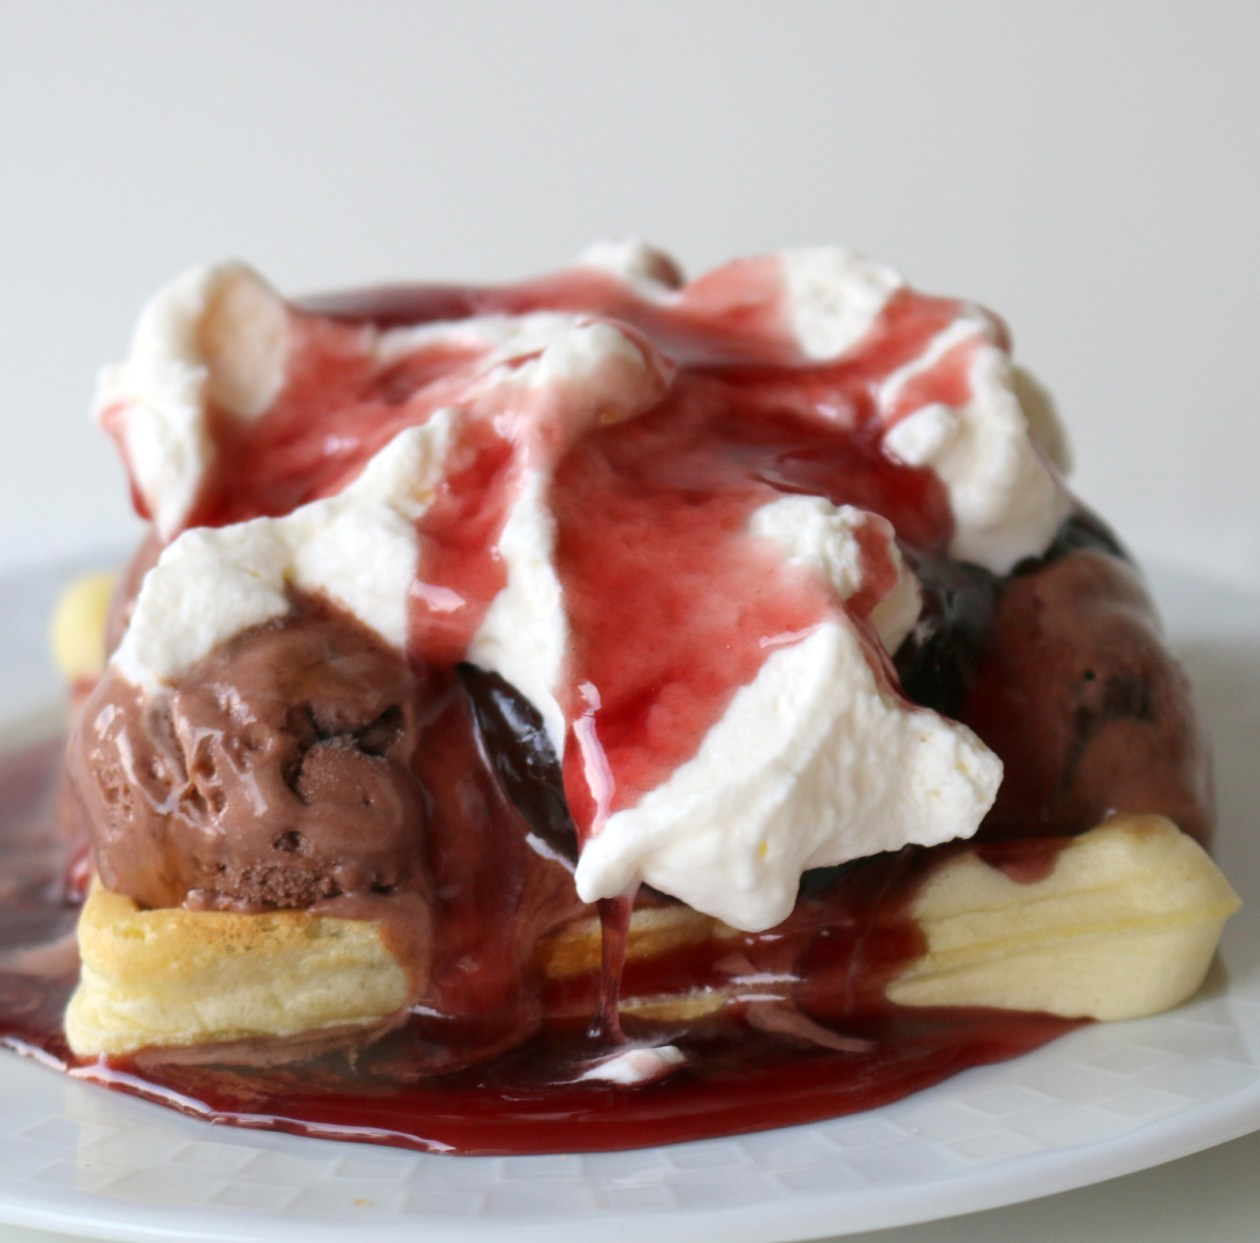 Ice Cream waffles from the best food blog 5starcookies-be kind and share